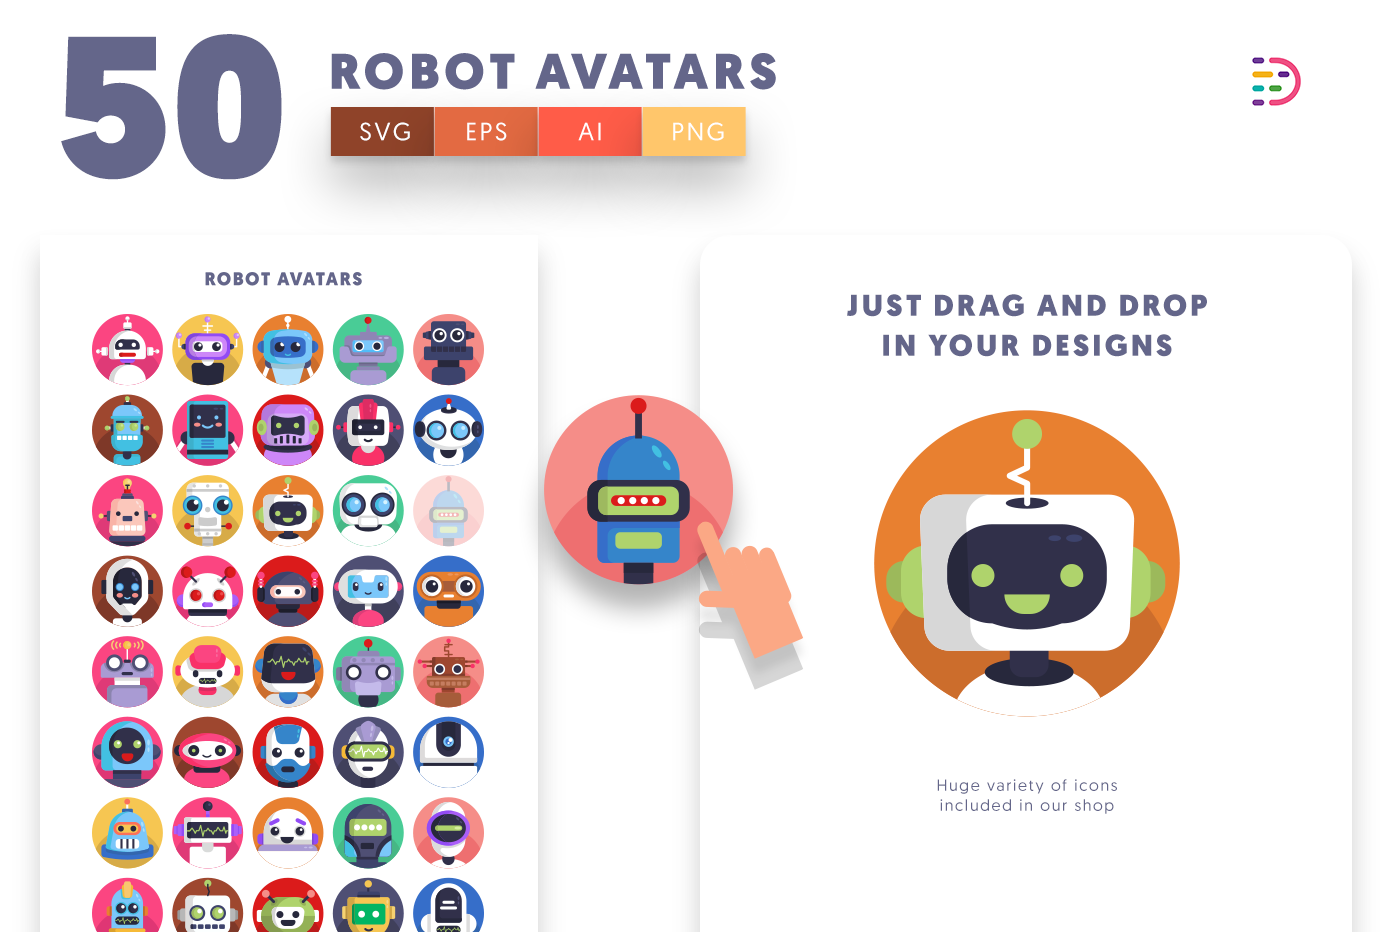 Drag and drop vector 50 Robot Avatar Icons